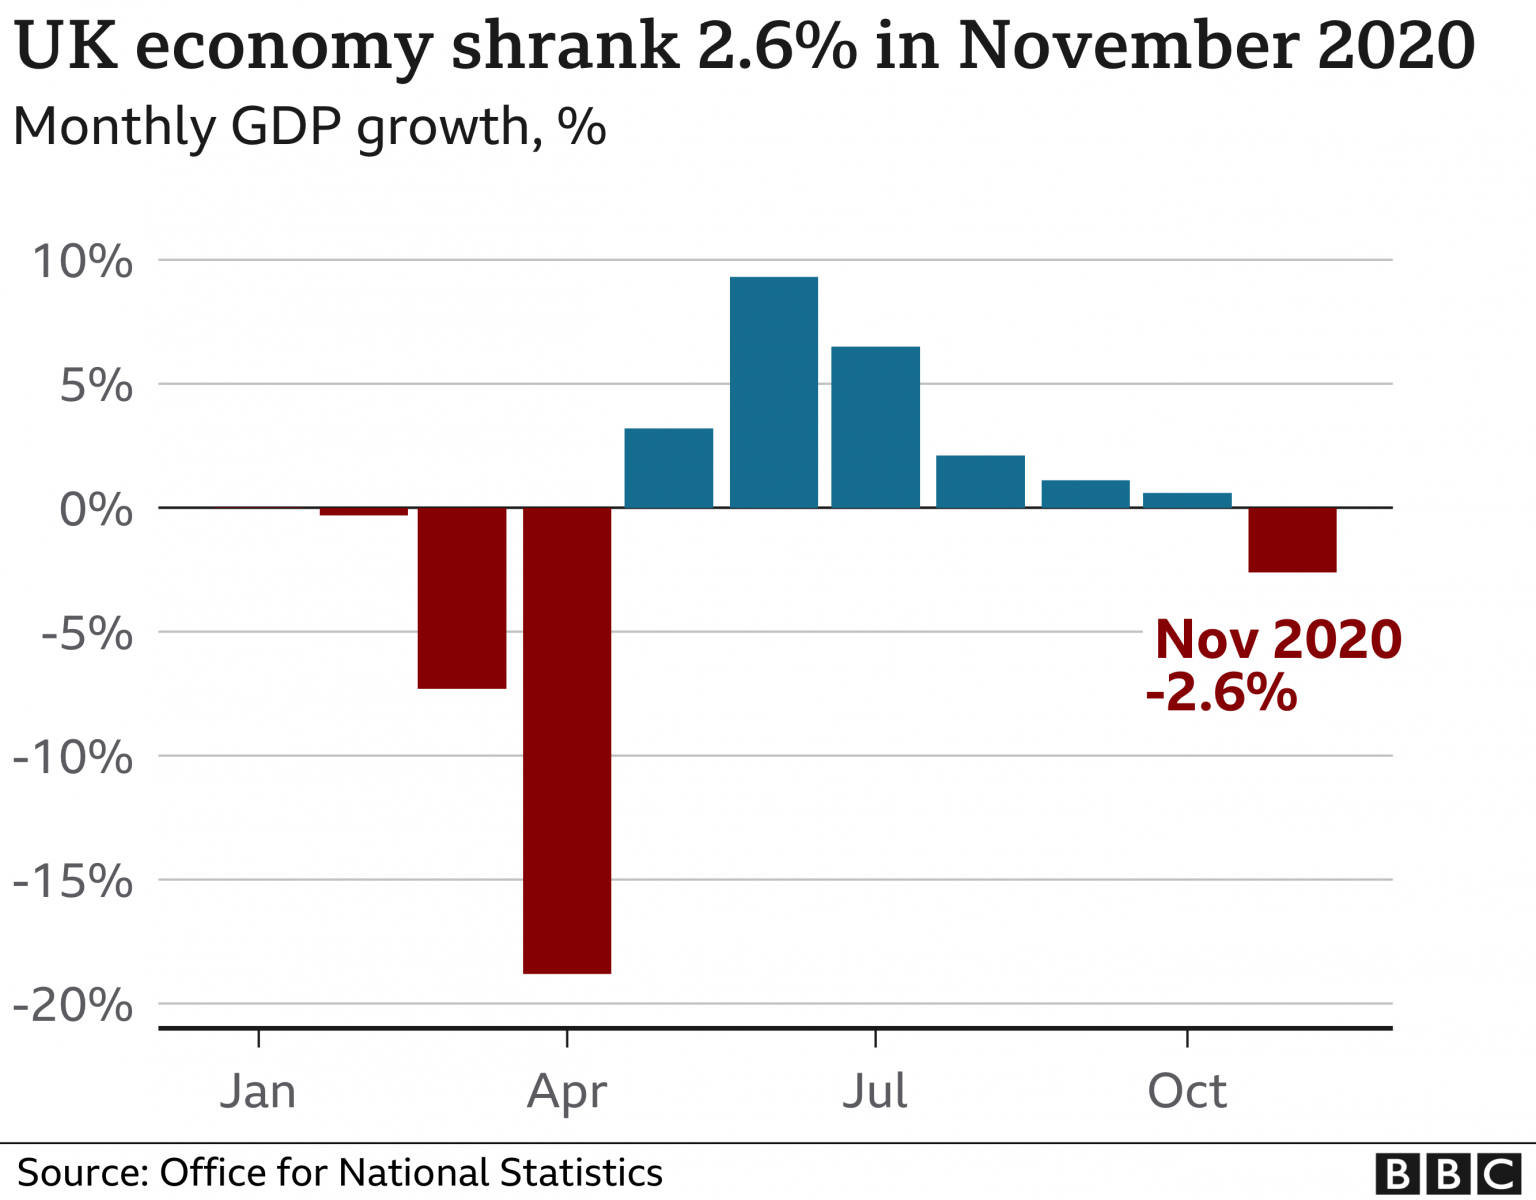 UK Economy Shrank by 2.6% in November as Services Suffered